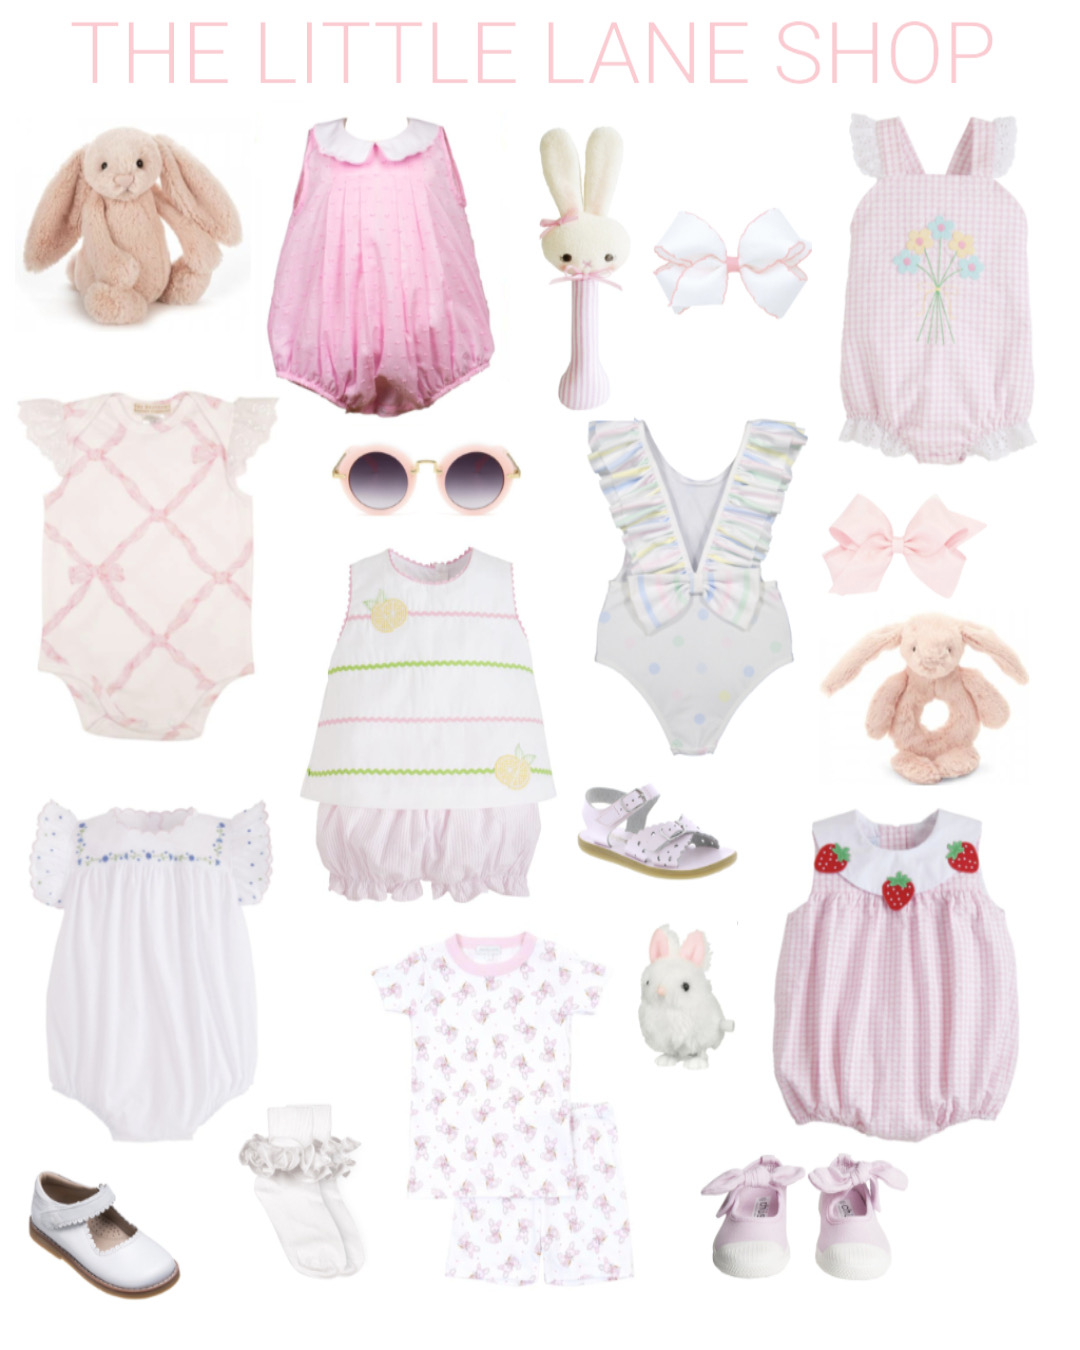 The Little Lane Shop Spring Arrivals!